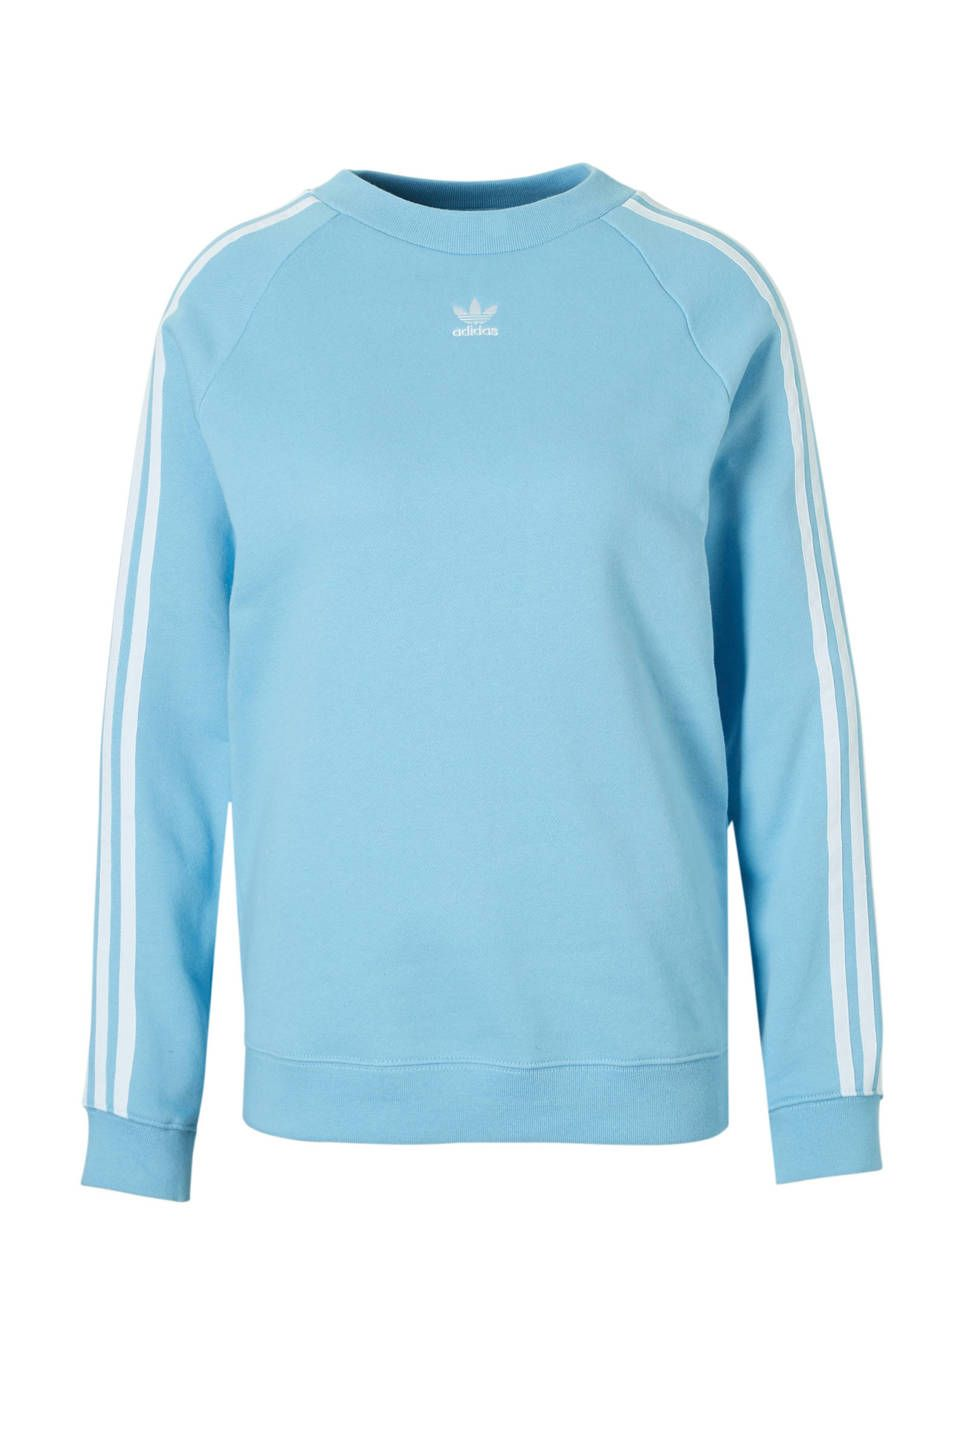 adidas originals sweater lichtblauw in 2019 - Trui ...